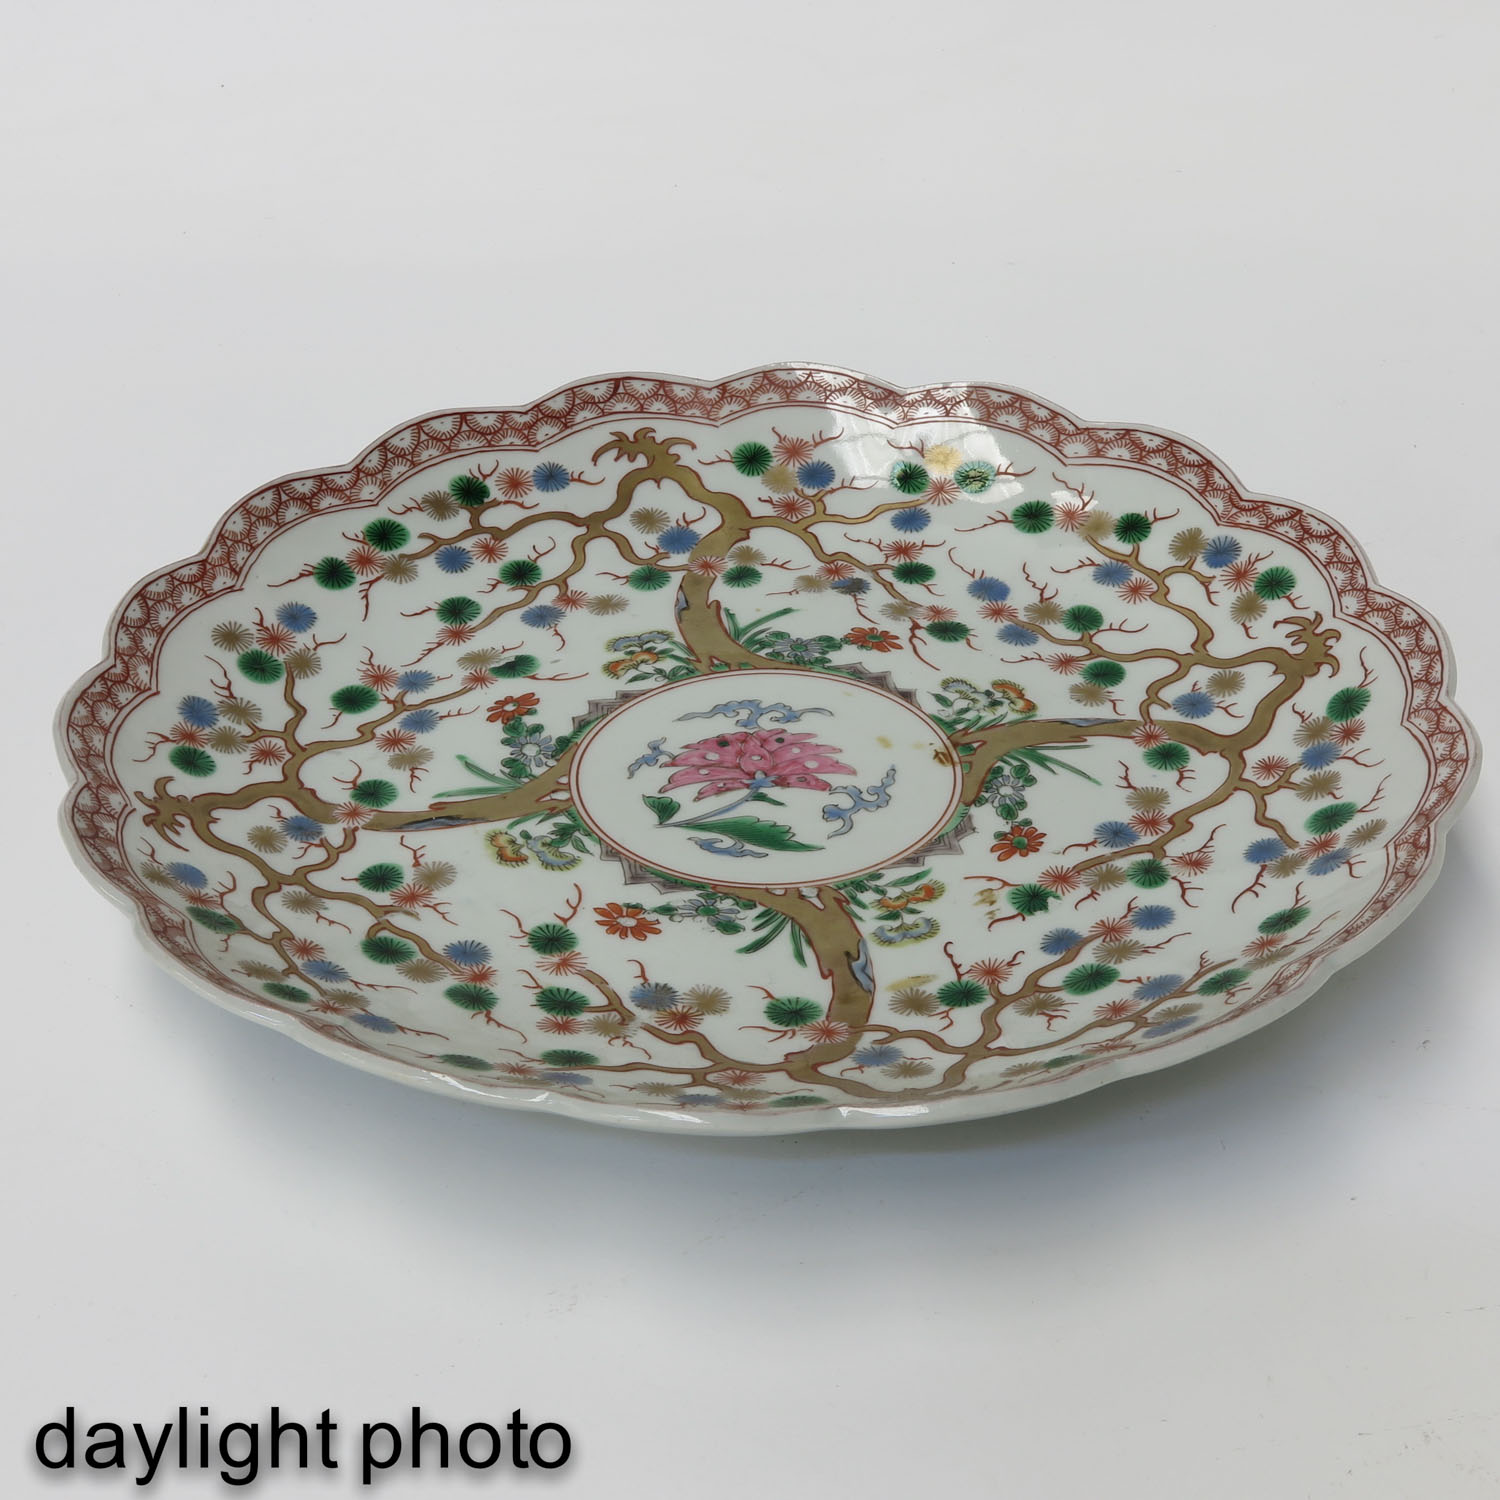 A Polychrome Decor Charger - Image 3 of 6